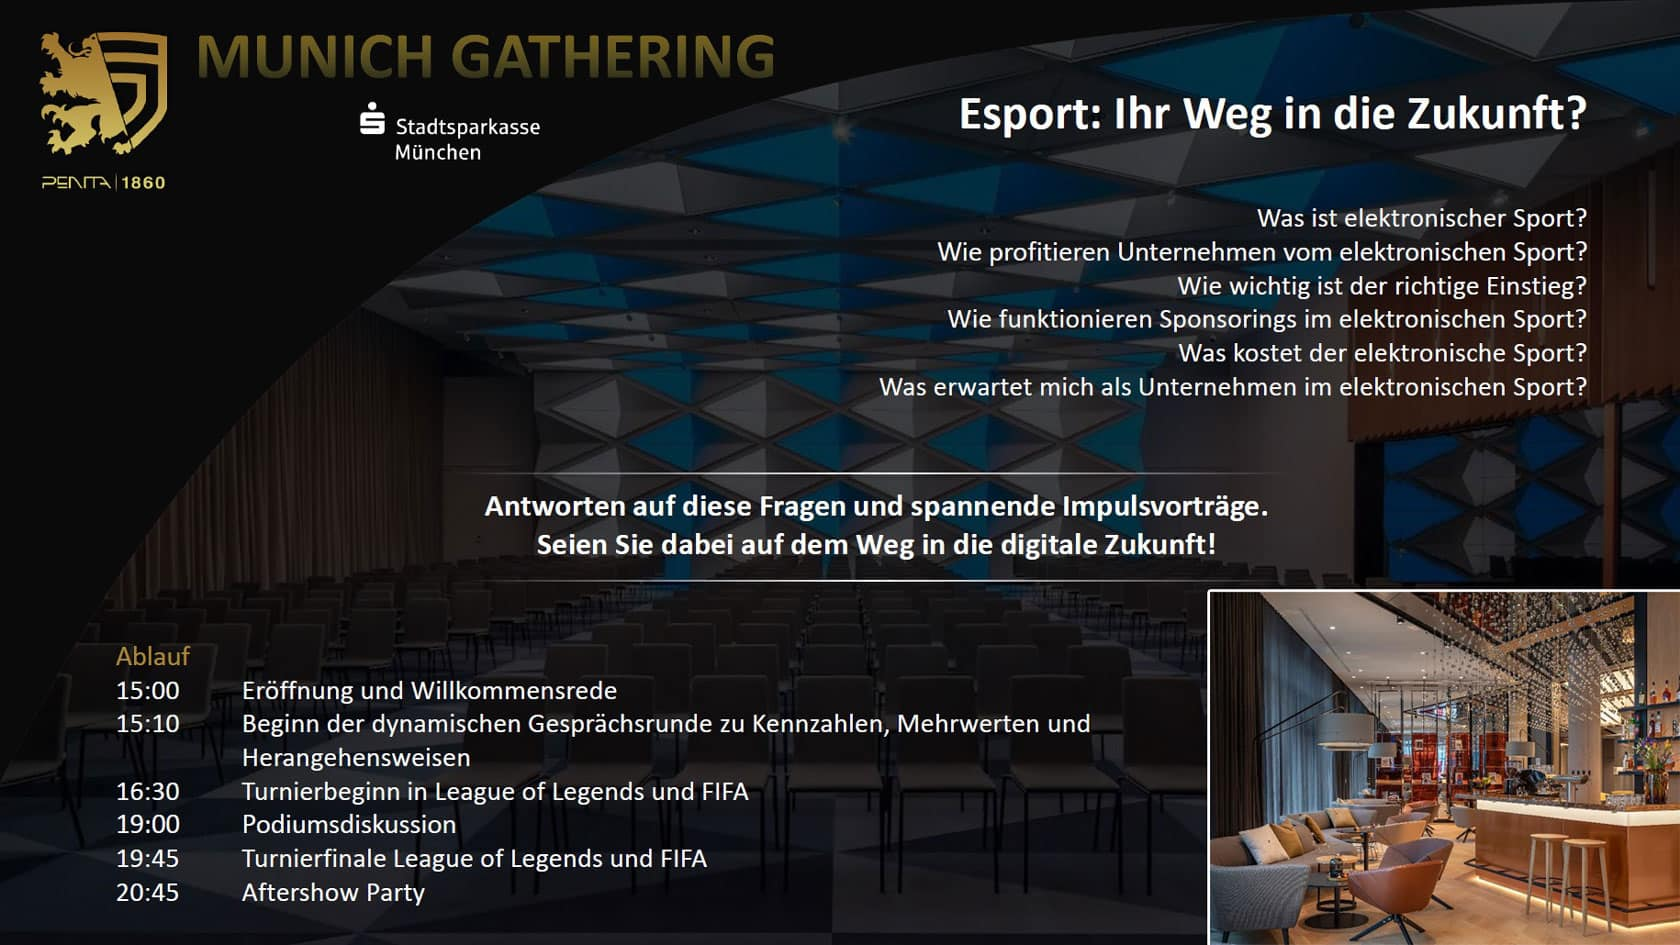 Munich Gathering header babt